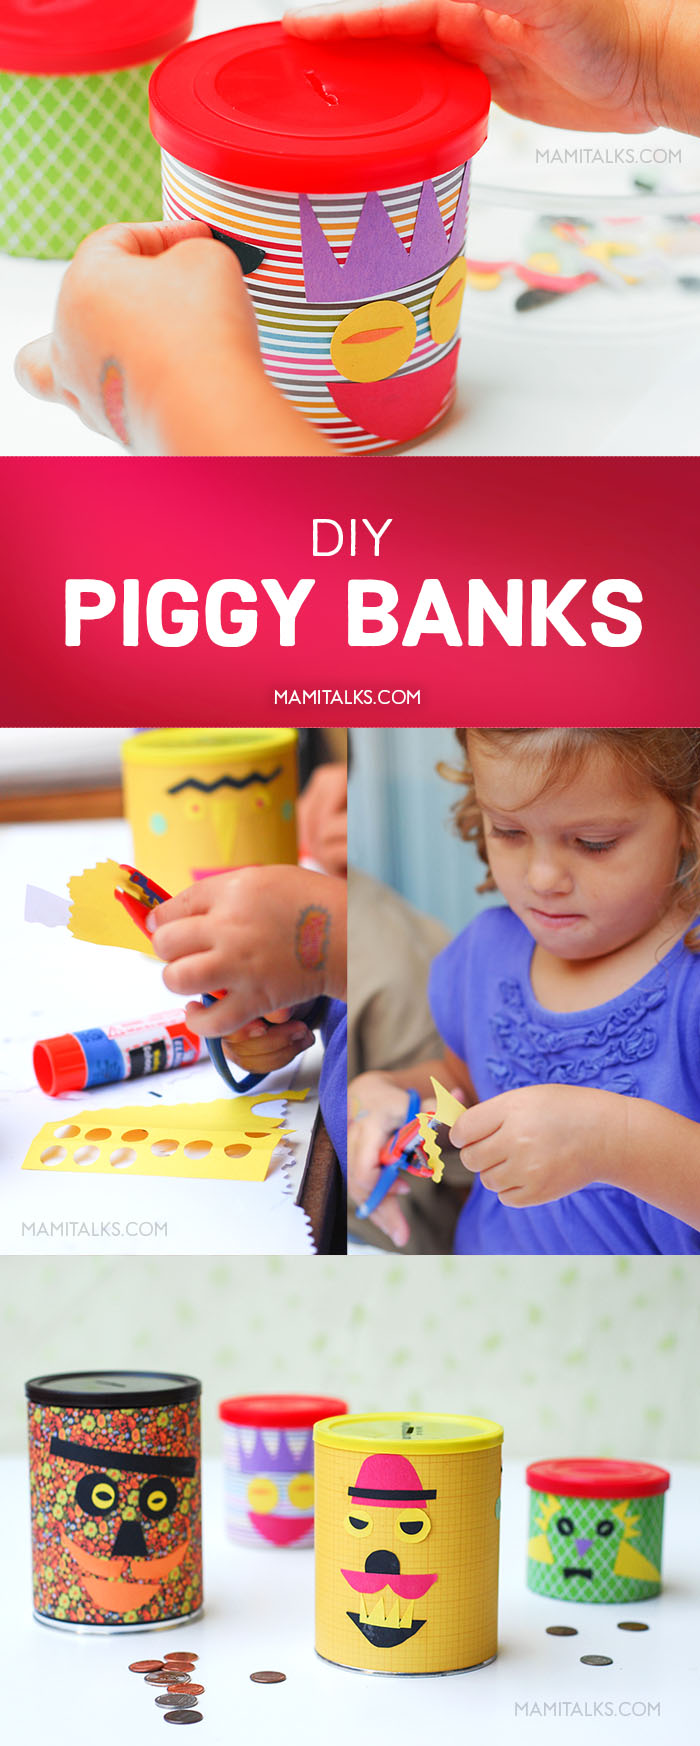 DIY Piggy Banks, several pictures with steps. MamiTalks.com